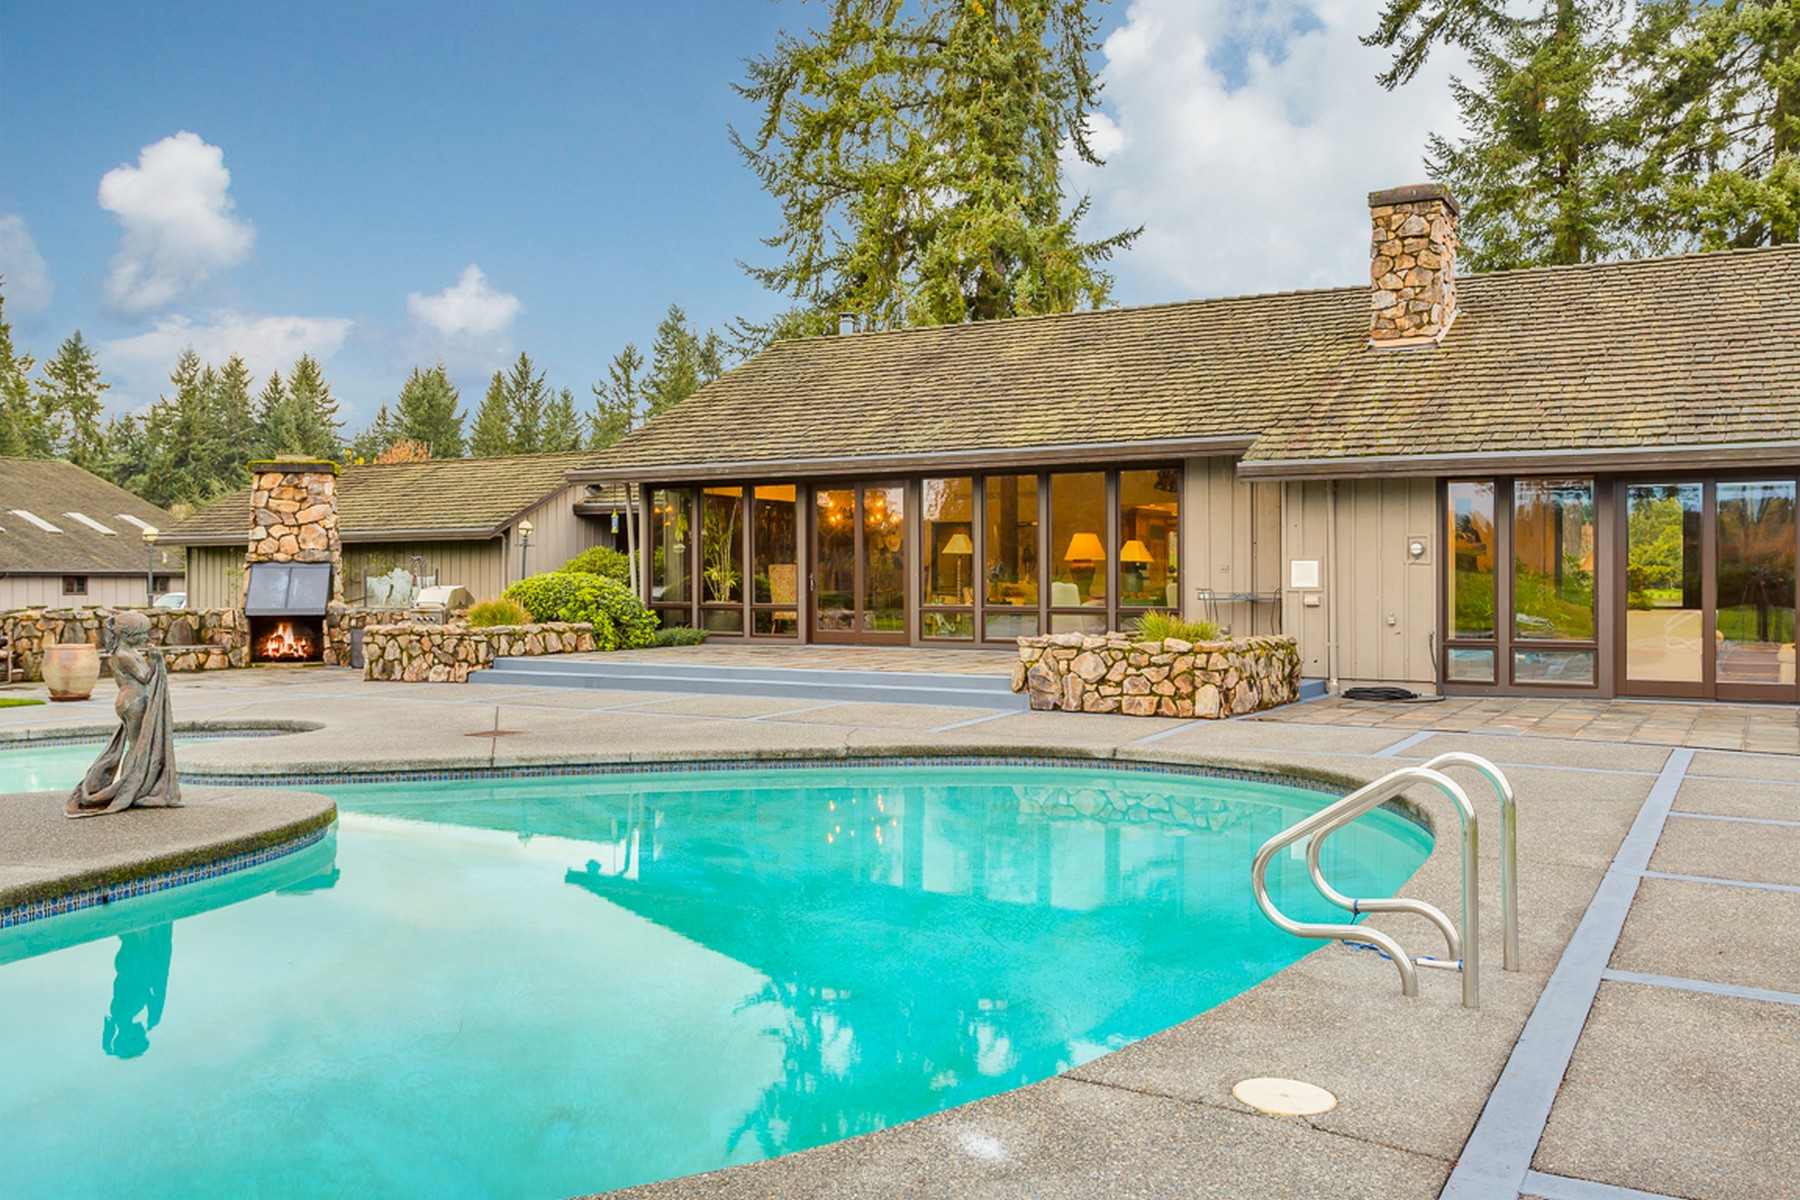 Additional photo for property listing at Misty Isle Farms 12011 SW 220th St Vashon, Washington 98070 United States